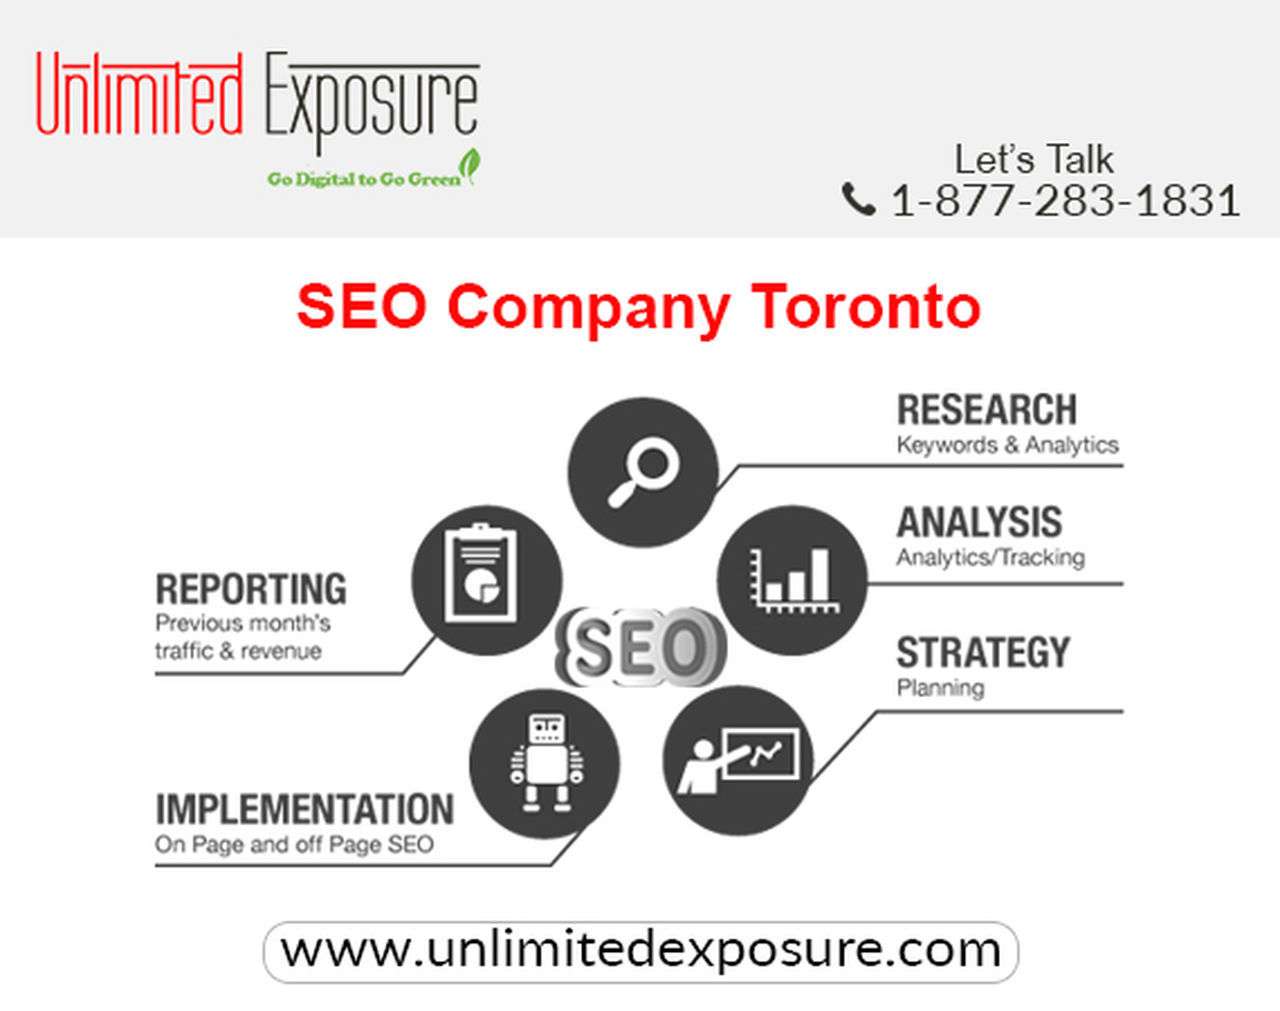 Unlimited Exposure Online, leading Search Engine Optimization Company in Toronto, providing SEO services to all size business since 1997. Unlimited Exposure invests intensive efforts in streamlining the keywords, SEO strategies, implementation and evaluation. Our experience and proficiency help us to optimize the SEO services according to defined budgets and priorities. More Details :- http://www.unlimitedexposure.com Seo SEO Services Smo, First Eyeem Photo